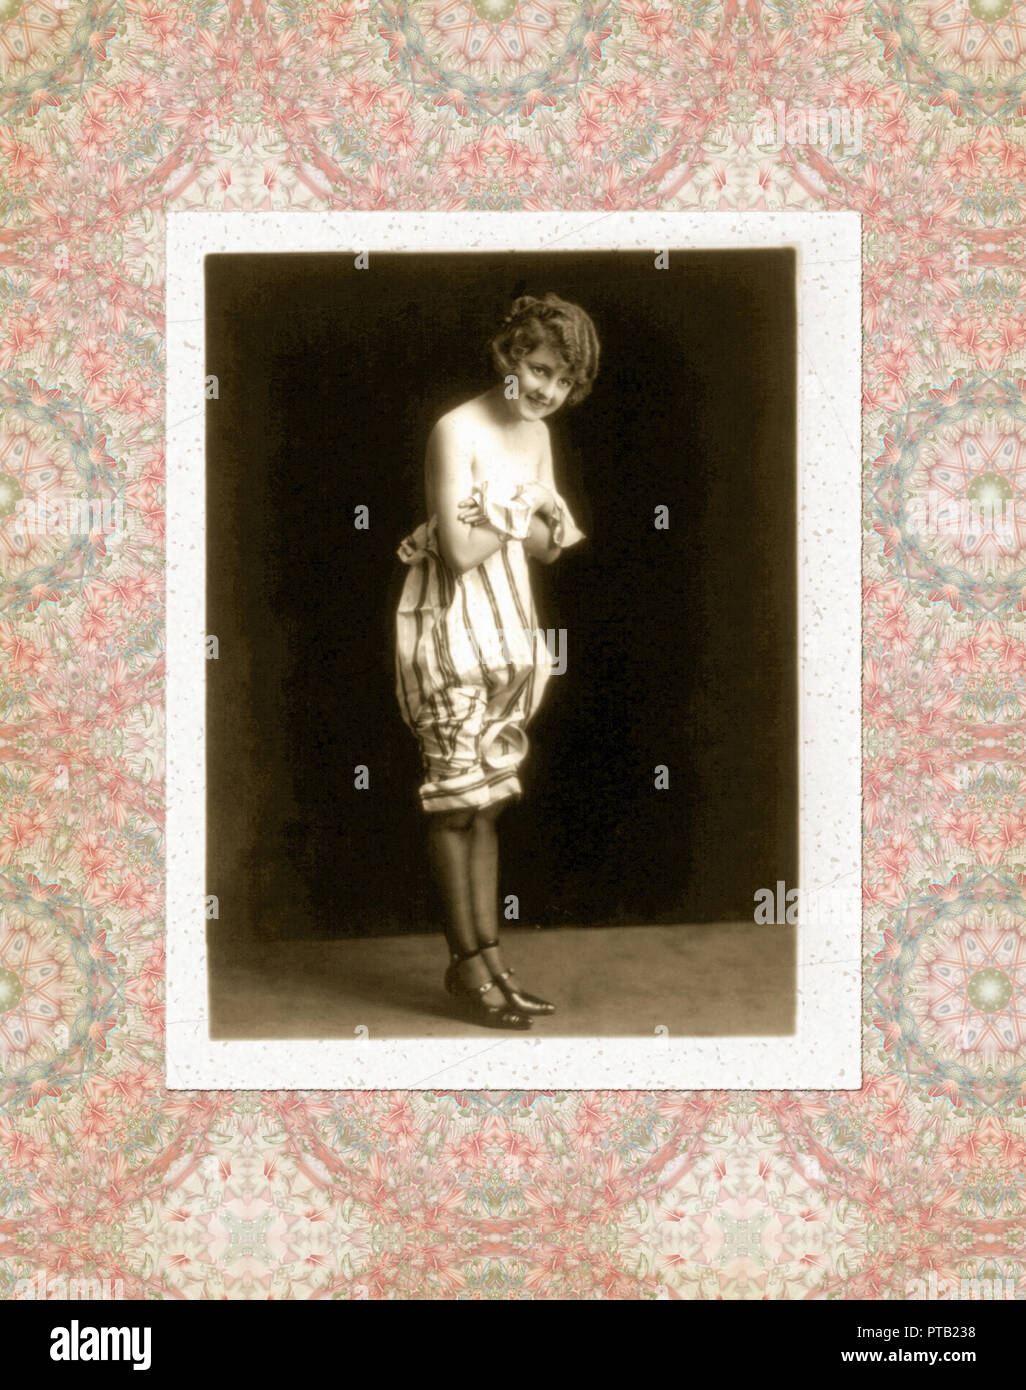 vintage photo of a woman in period dress Stock Photo